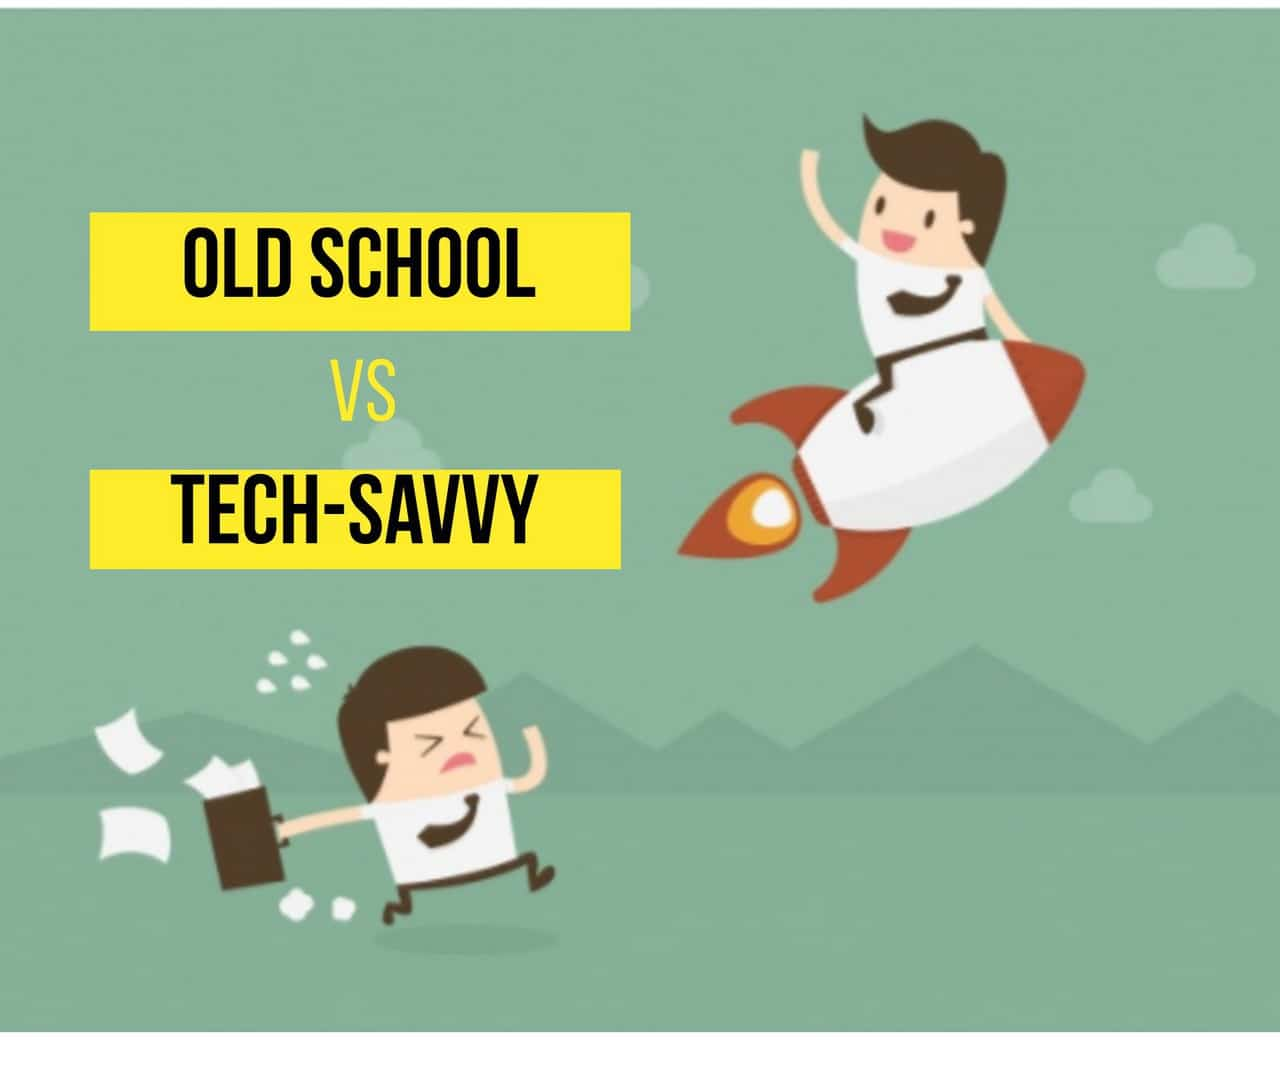 Does Digital Marketing Actually Help Real Estate Agents? Old School Vs the Tech-Savvy